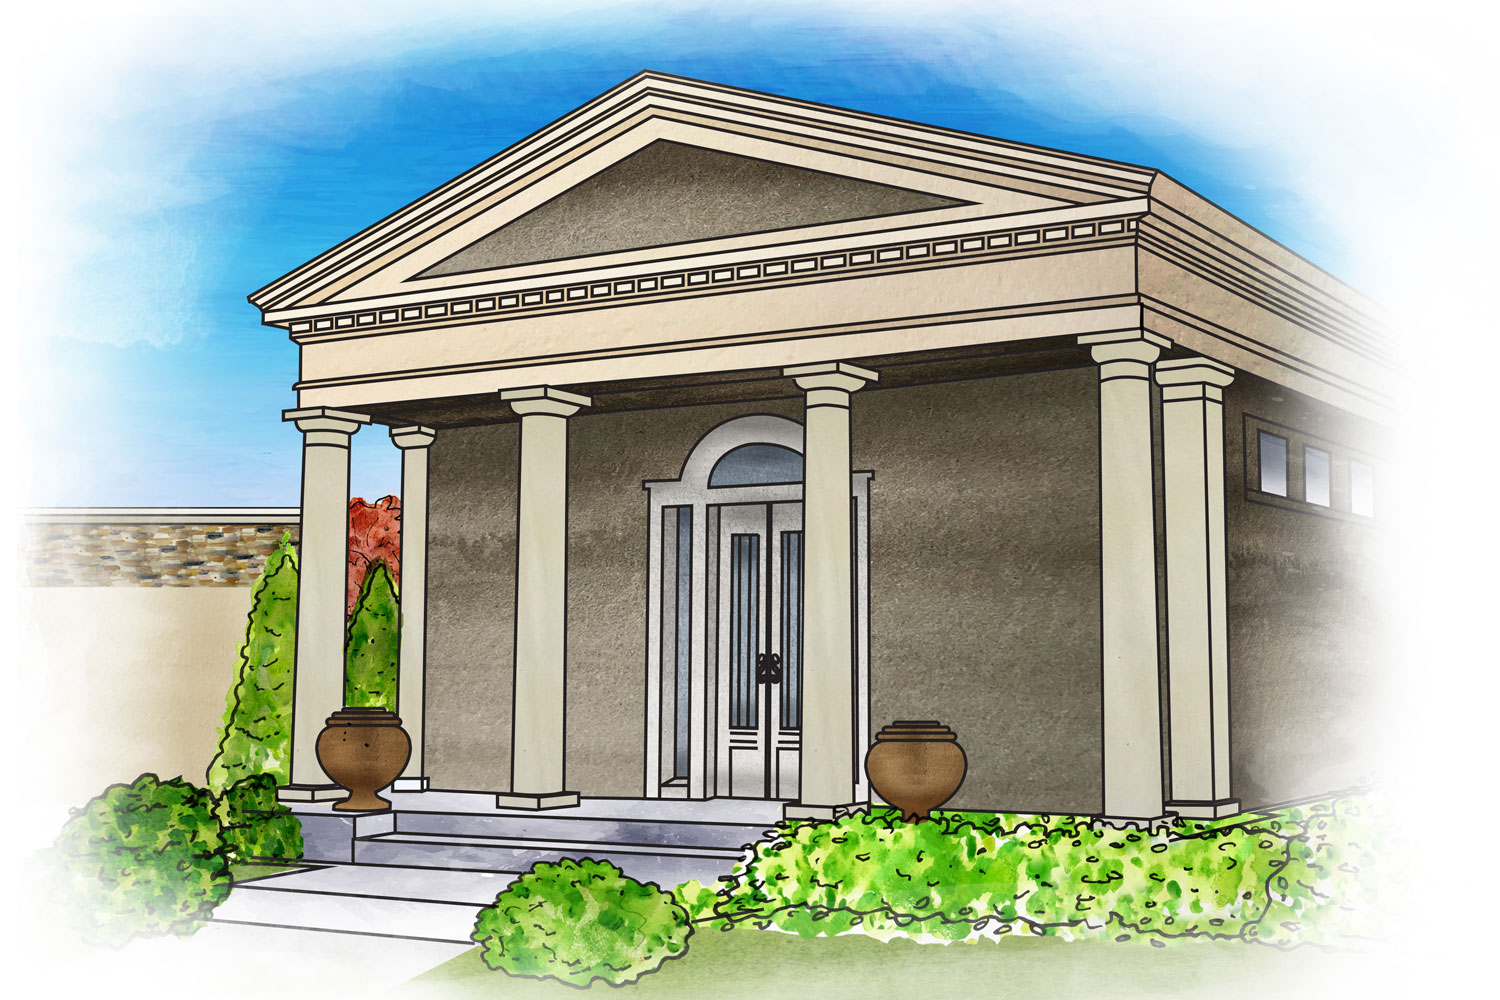 Custom Private Family Mausoleum Concept Illustration